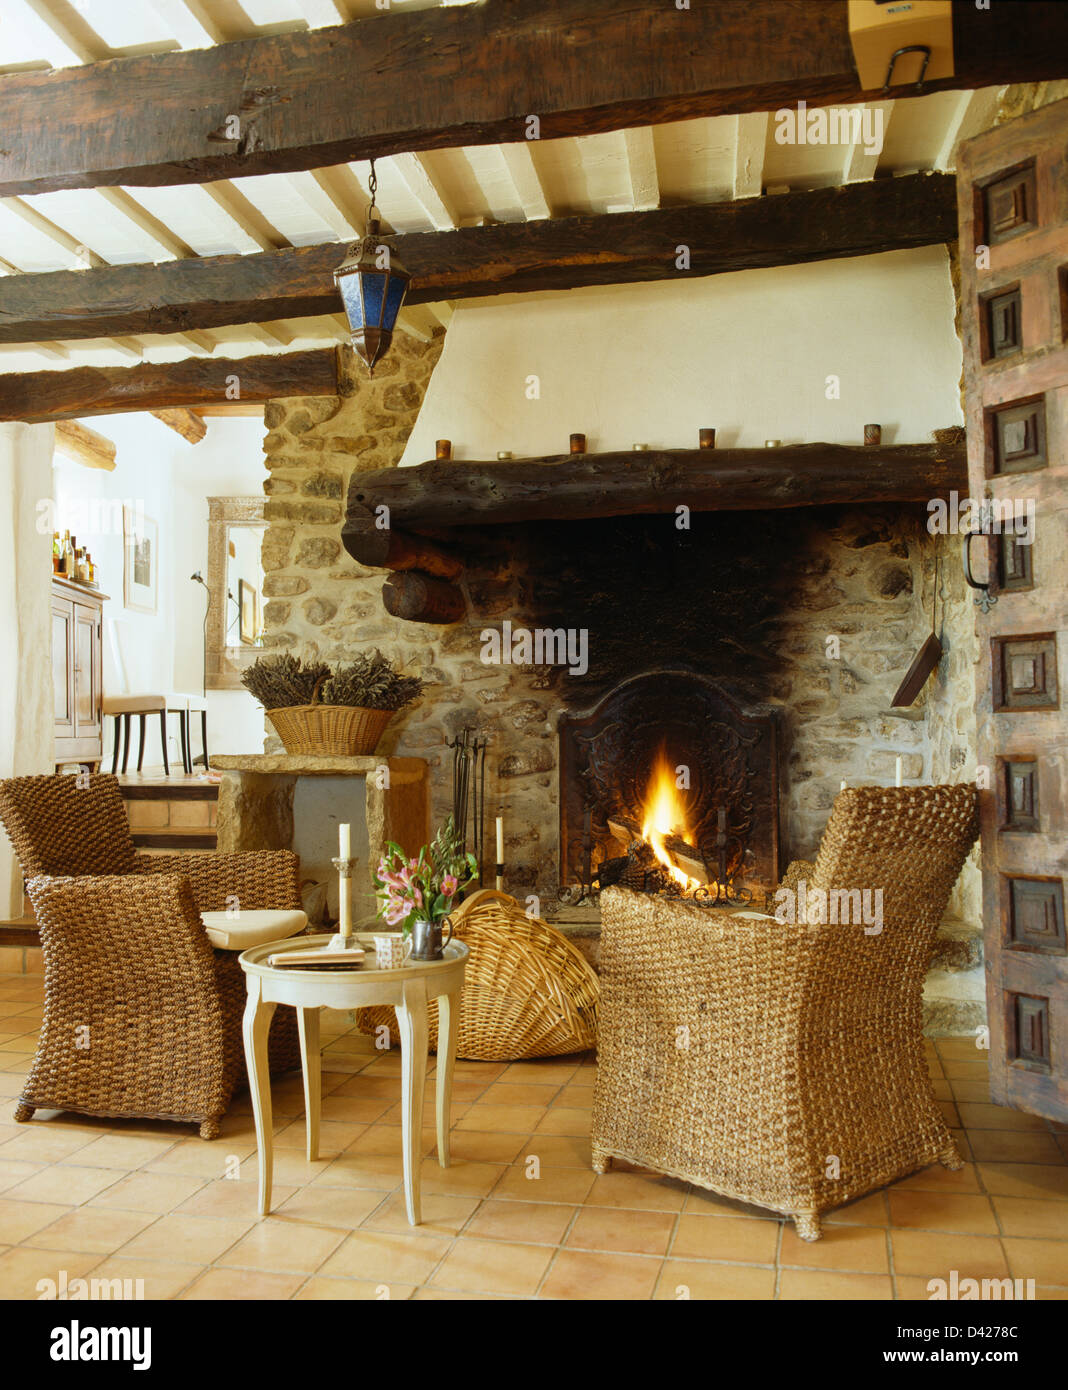 Small Country Living Rooms. Wicker armchairs and small table in French country living room with rustic  beamed ceiling fireplace lighted fire